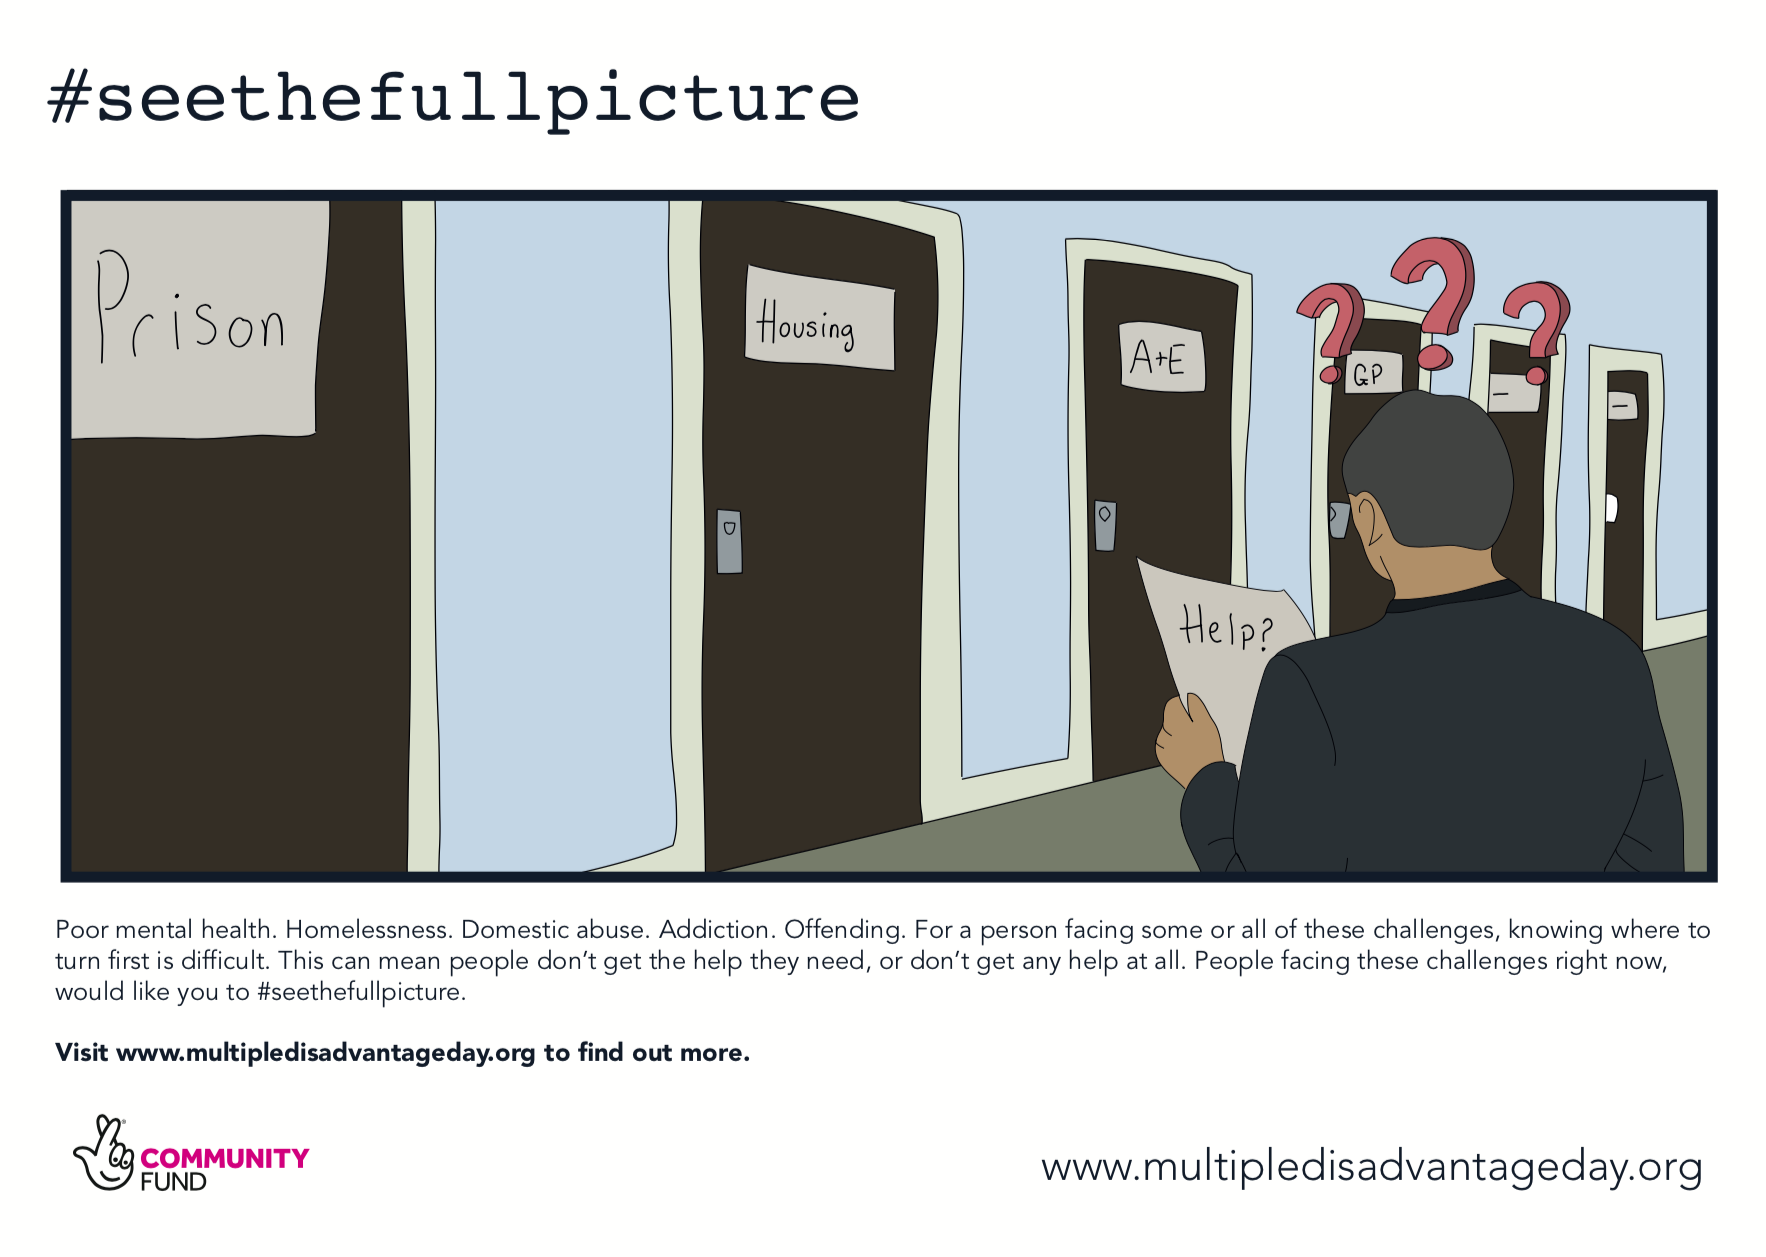 Multiple Disadvantage Day - #seethefullpicture - Campaign Graphics - Doors